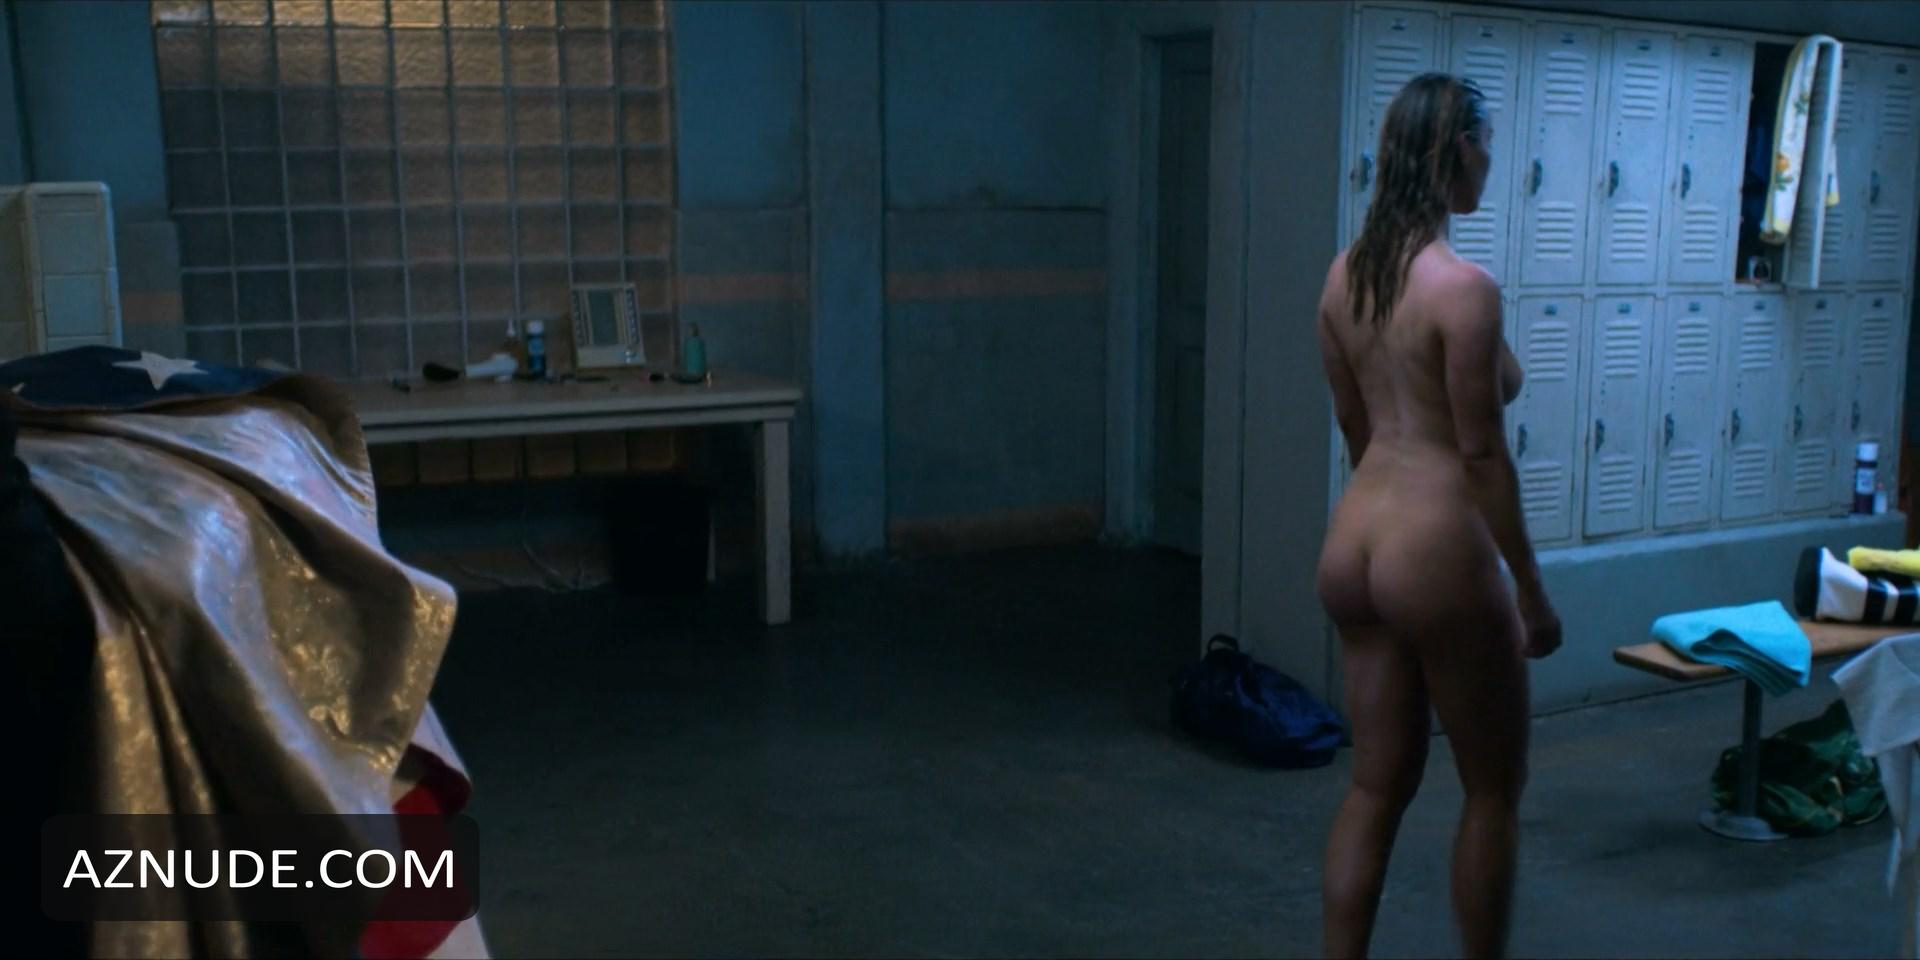 Betty gilpin glow sexy nudes (84 photo), Hot Celebrity fotos